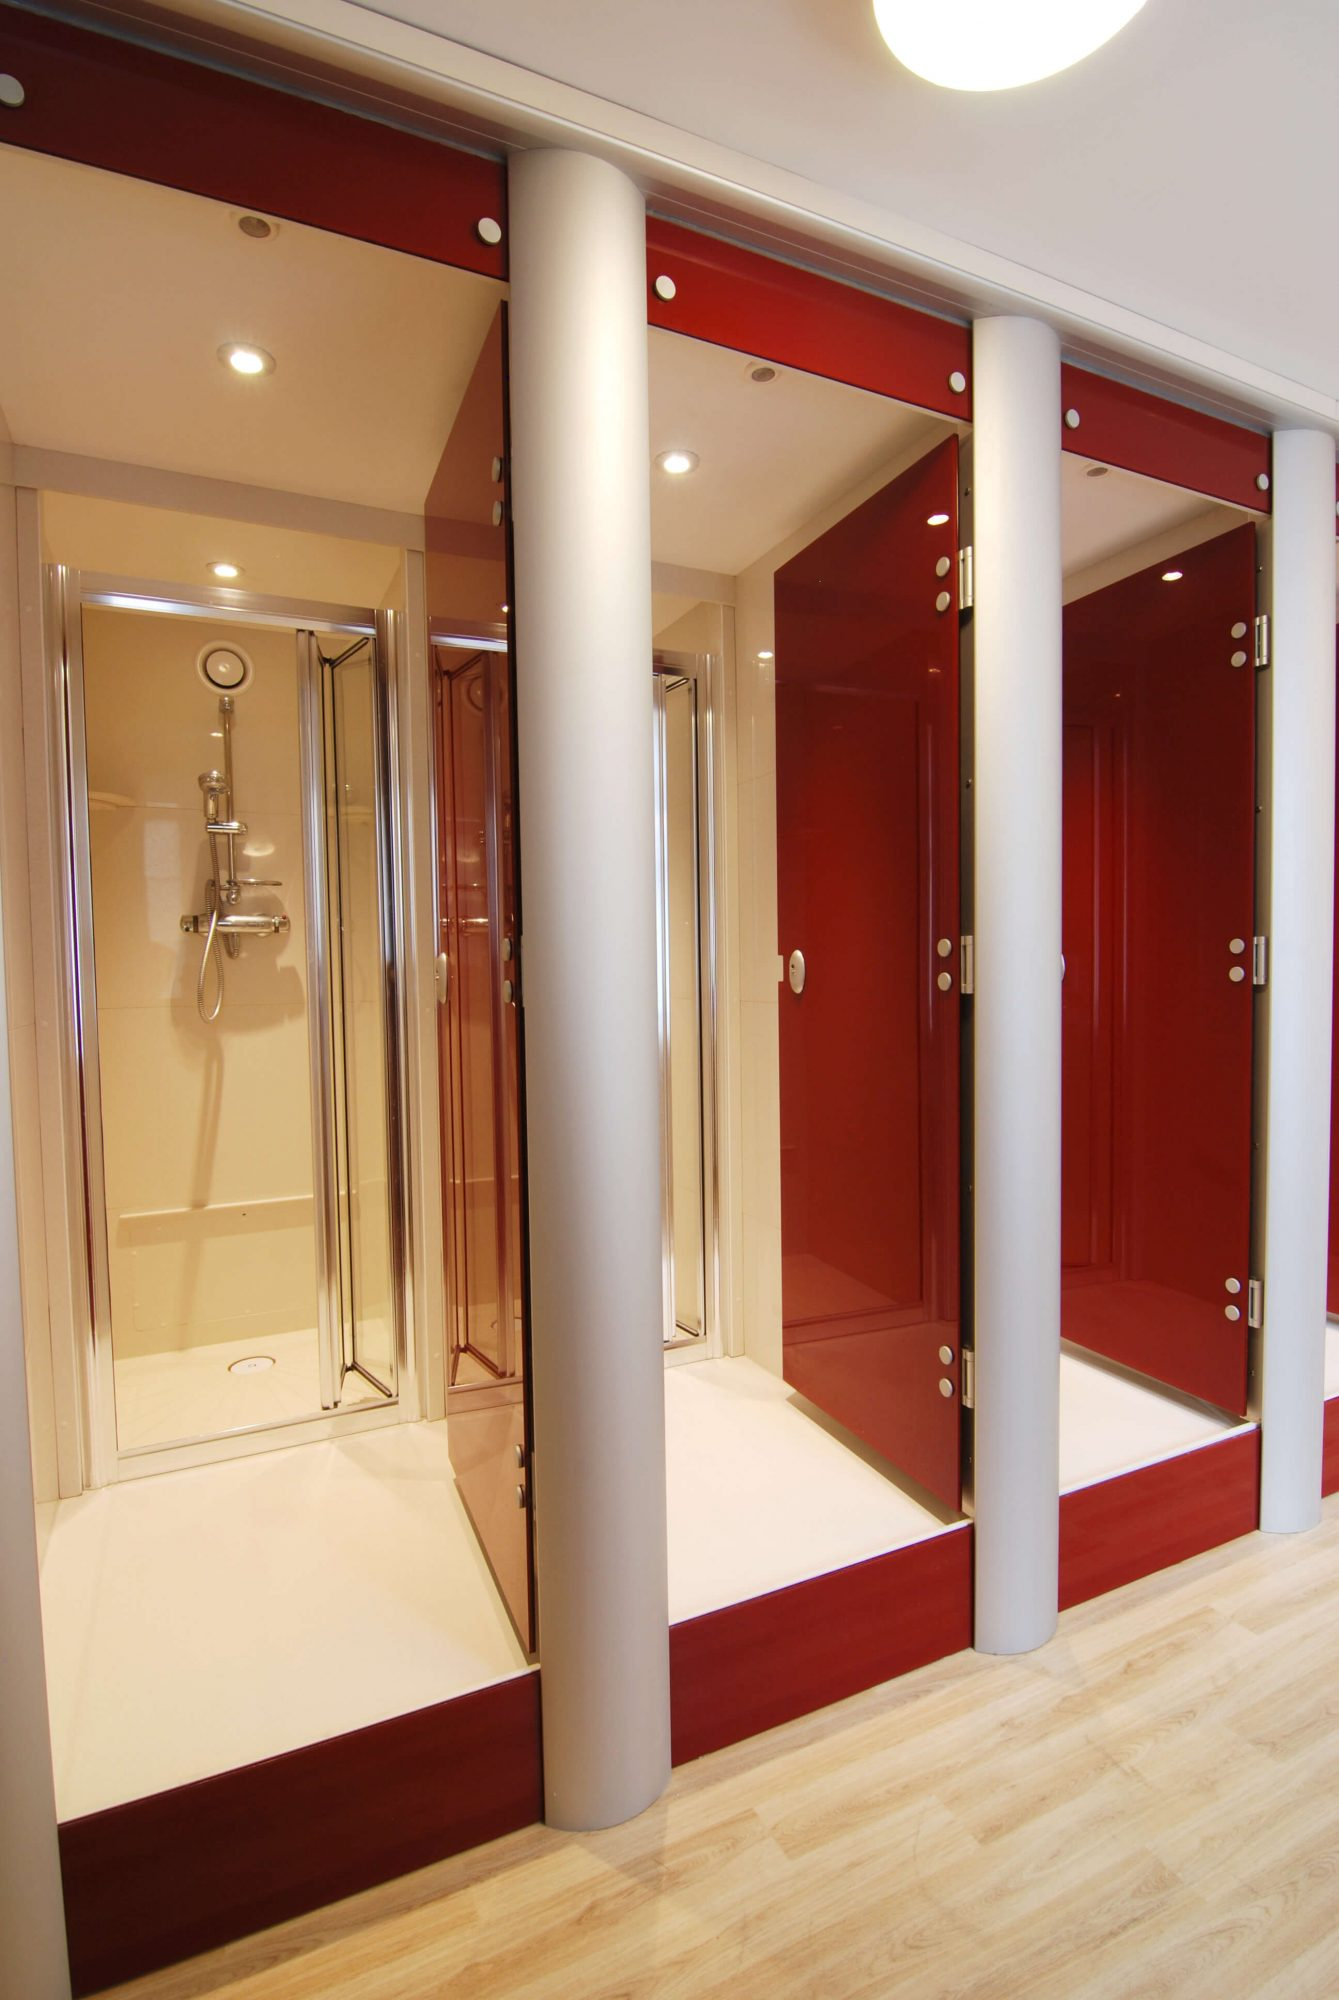 Queenswood School_shower pods